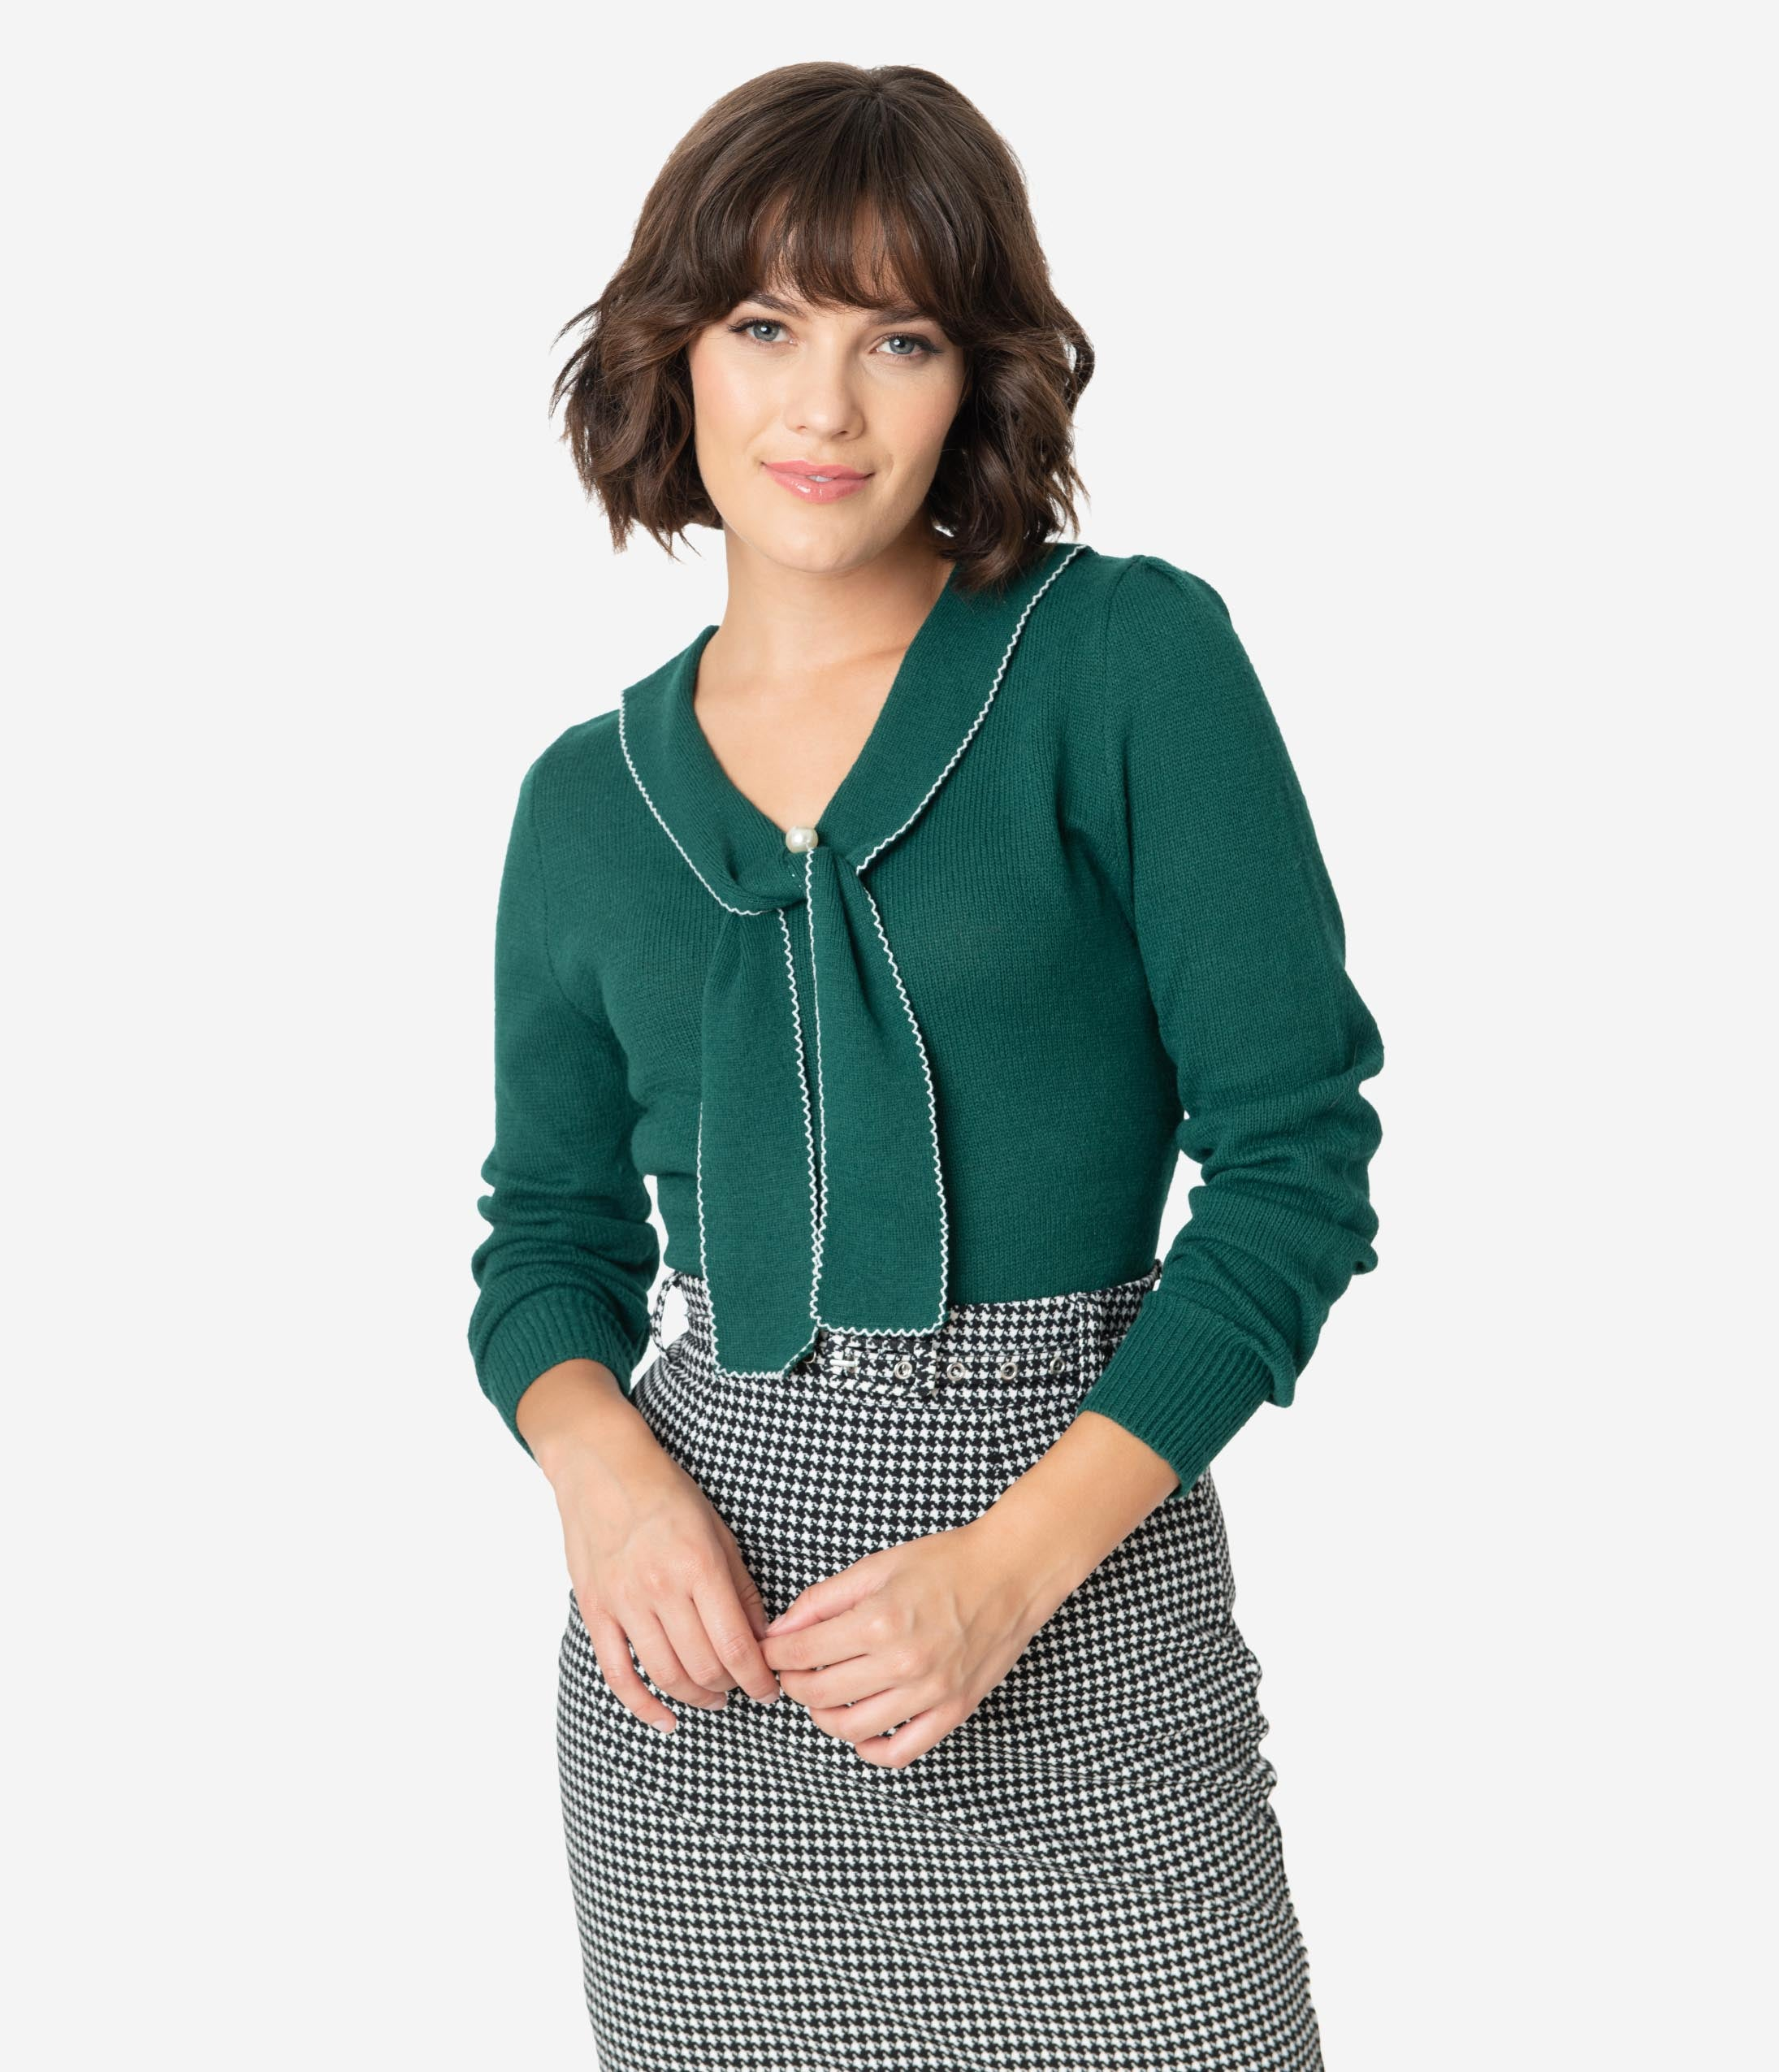 1930s Style Blouses, Shirts, Tops | Vintage Blouses Hell Bunny Emerald Green Sailor Bow Connie Knit Sweater $62.00 AT vintagedancer.com